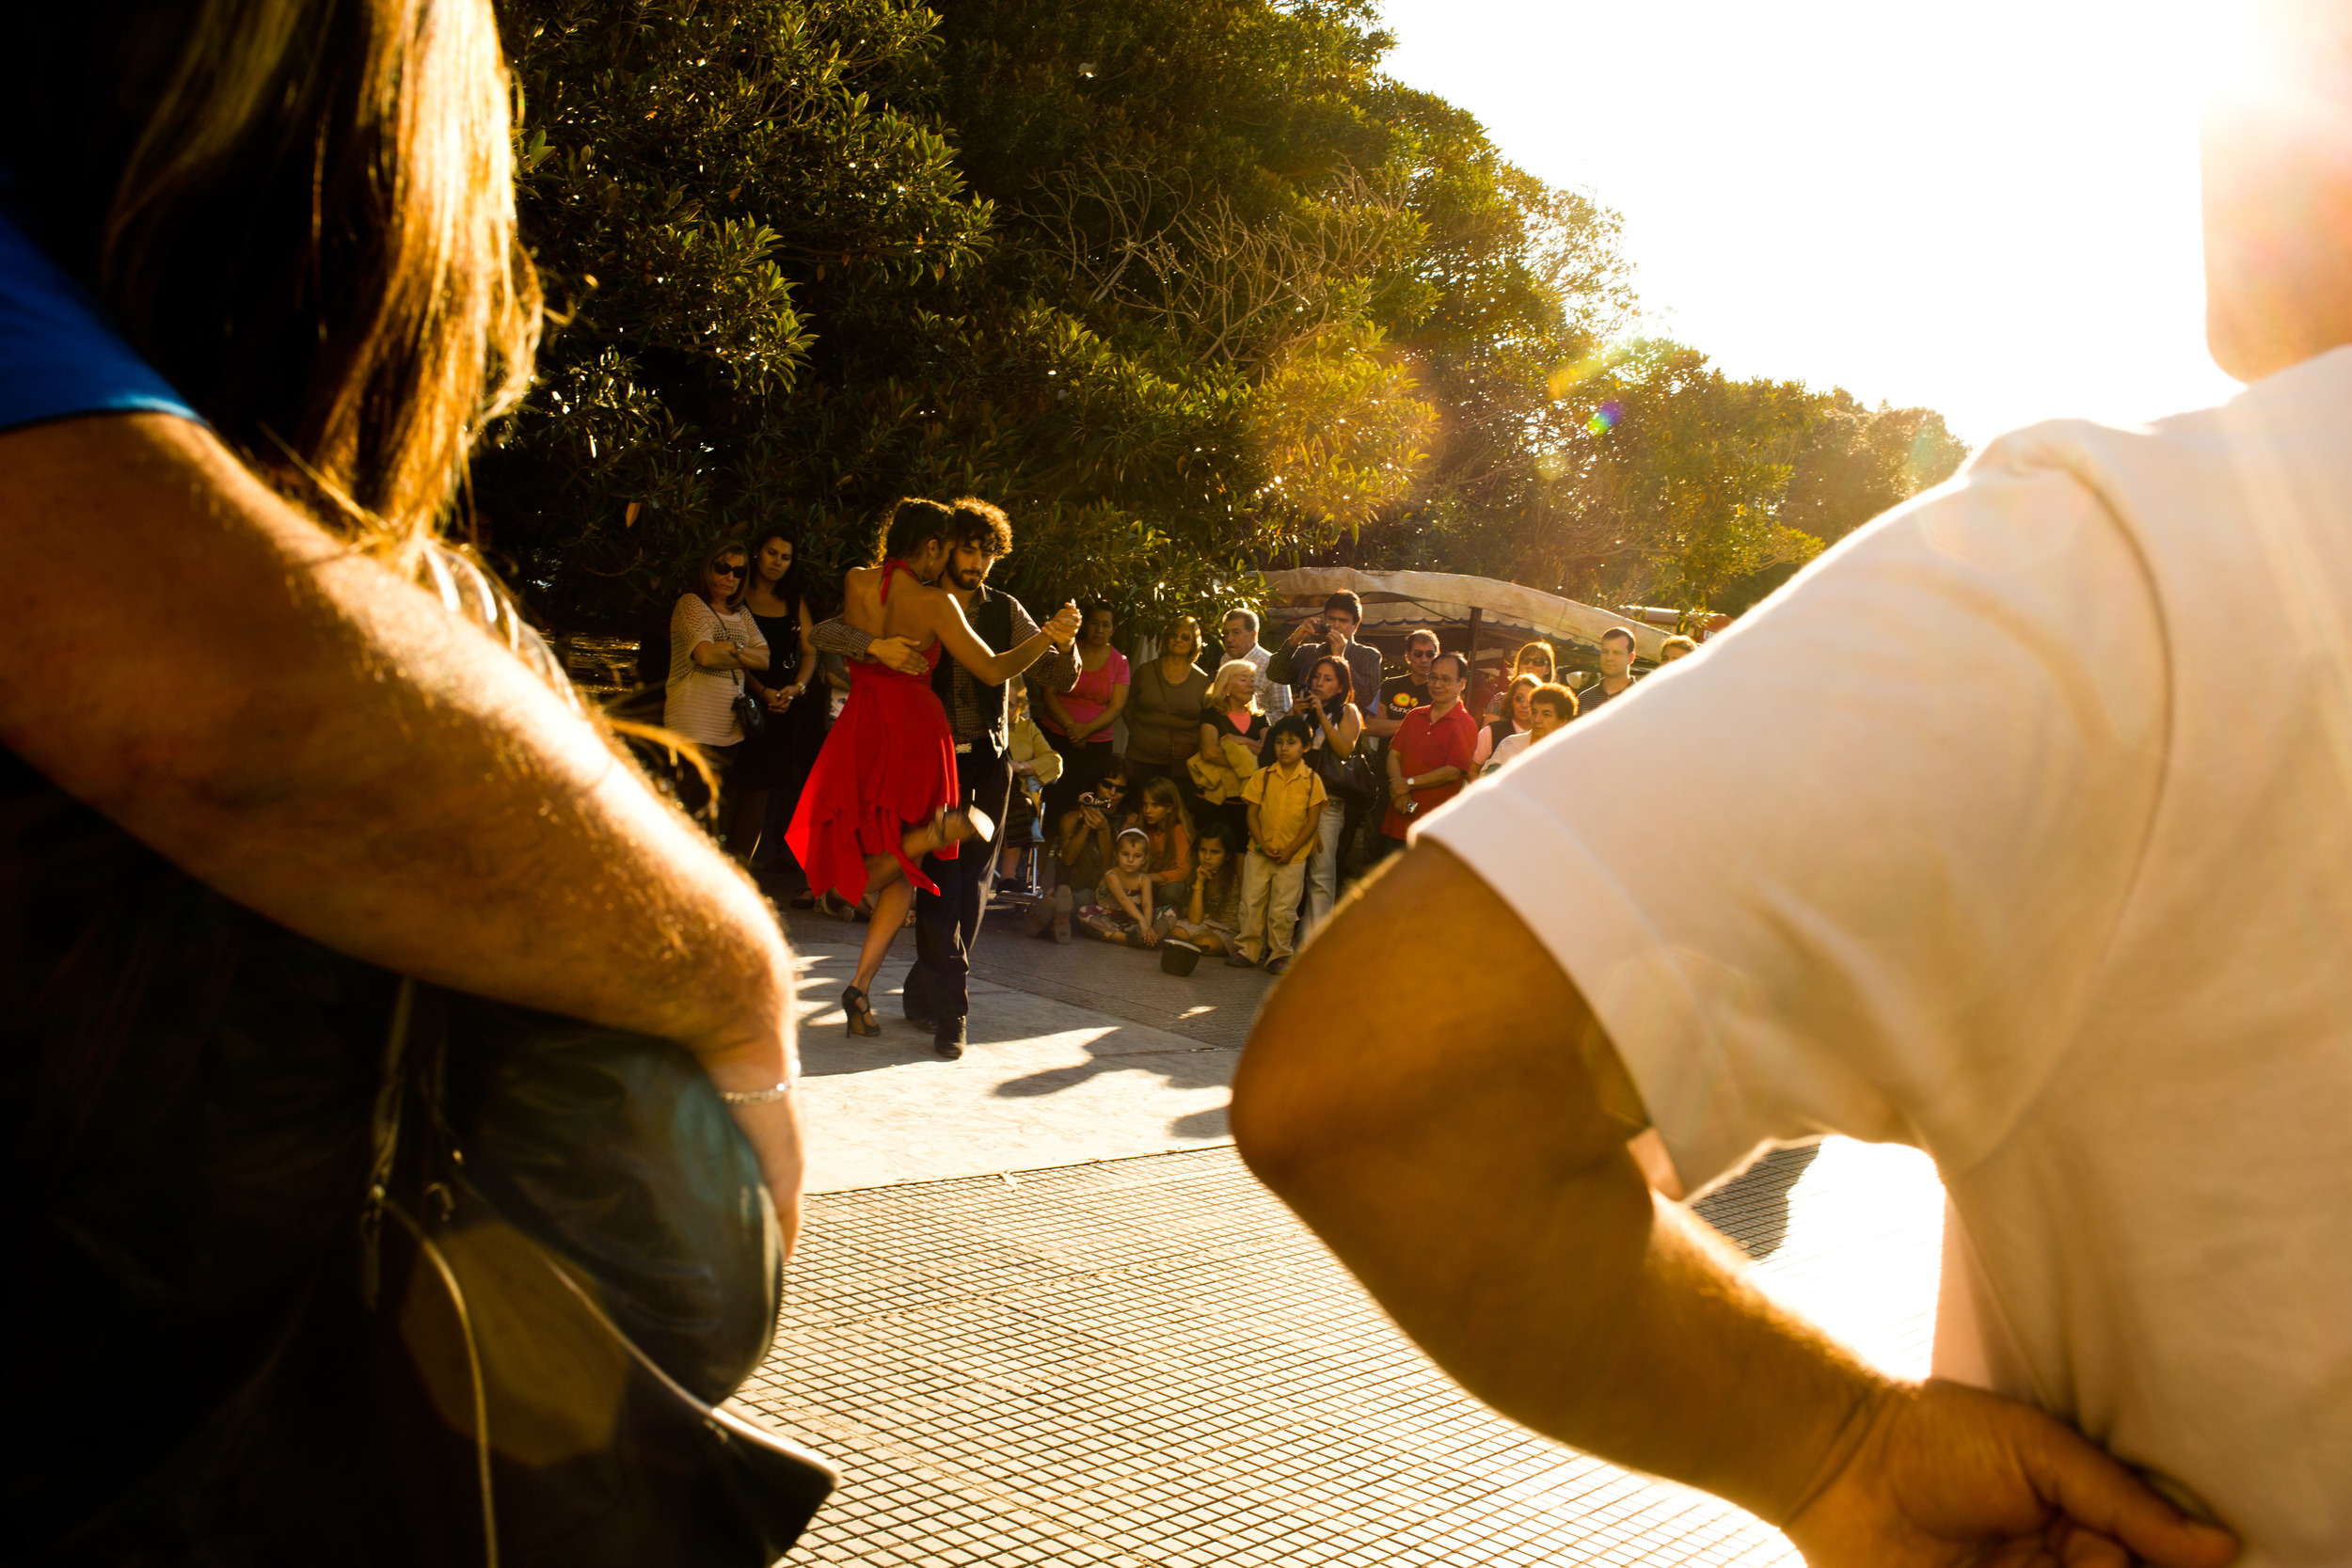 A couple dances the tango in Buenos Aires, Argentina.